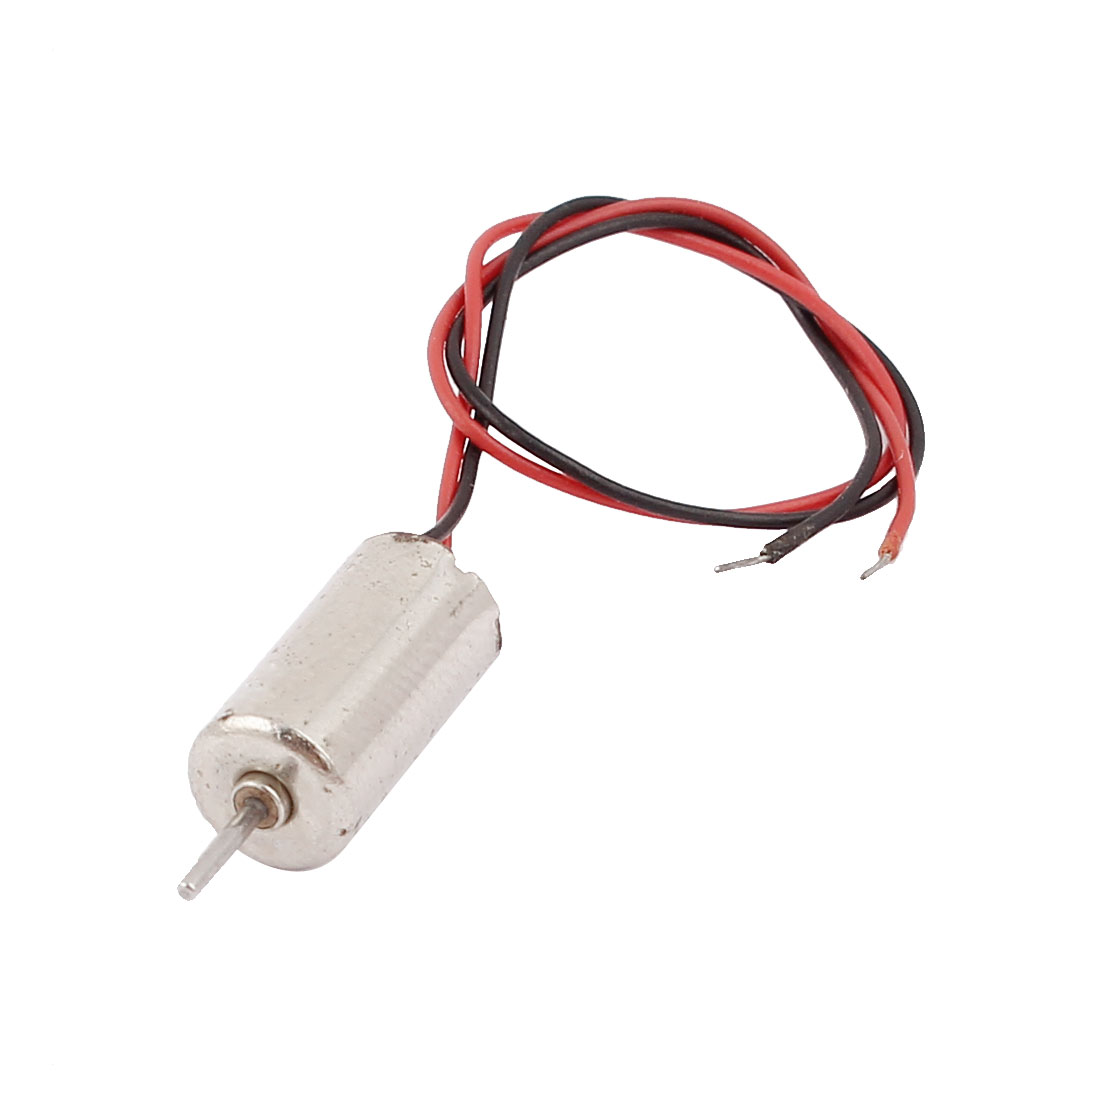 DC1.5V-4.5V 44273RPM 2 Wire Coreless Motor 6mm x 12mm for RC Model Toy